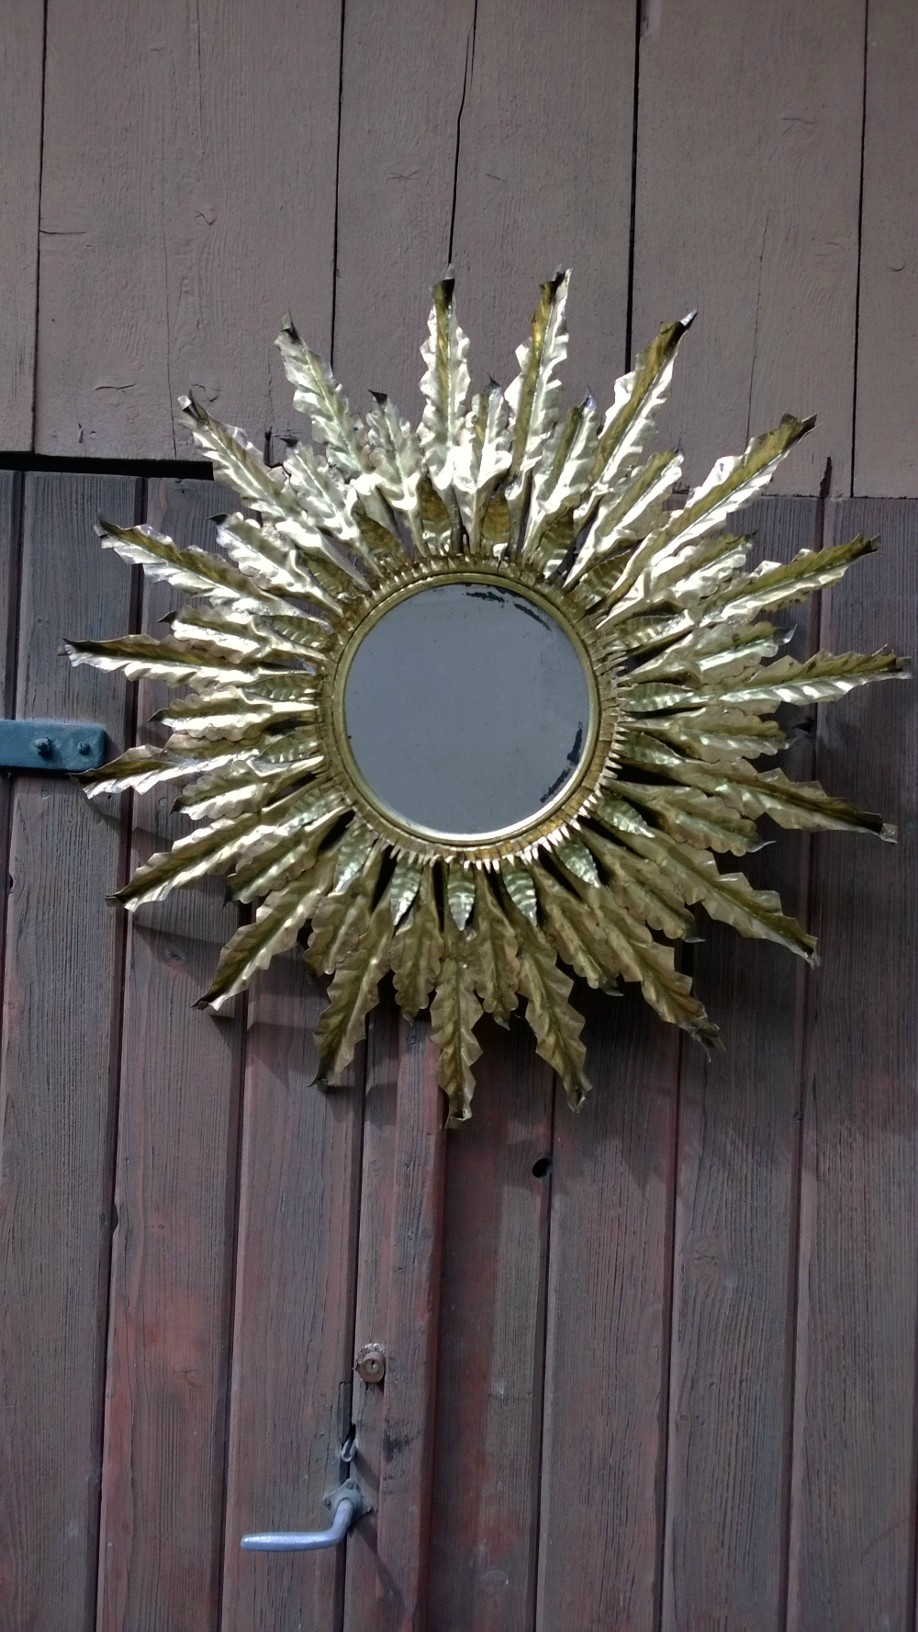 Grand miroir soleil en metal dor vintage indus what else for Grand miroir metal